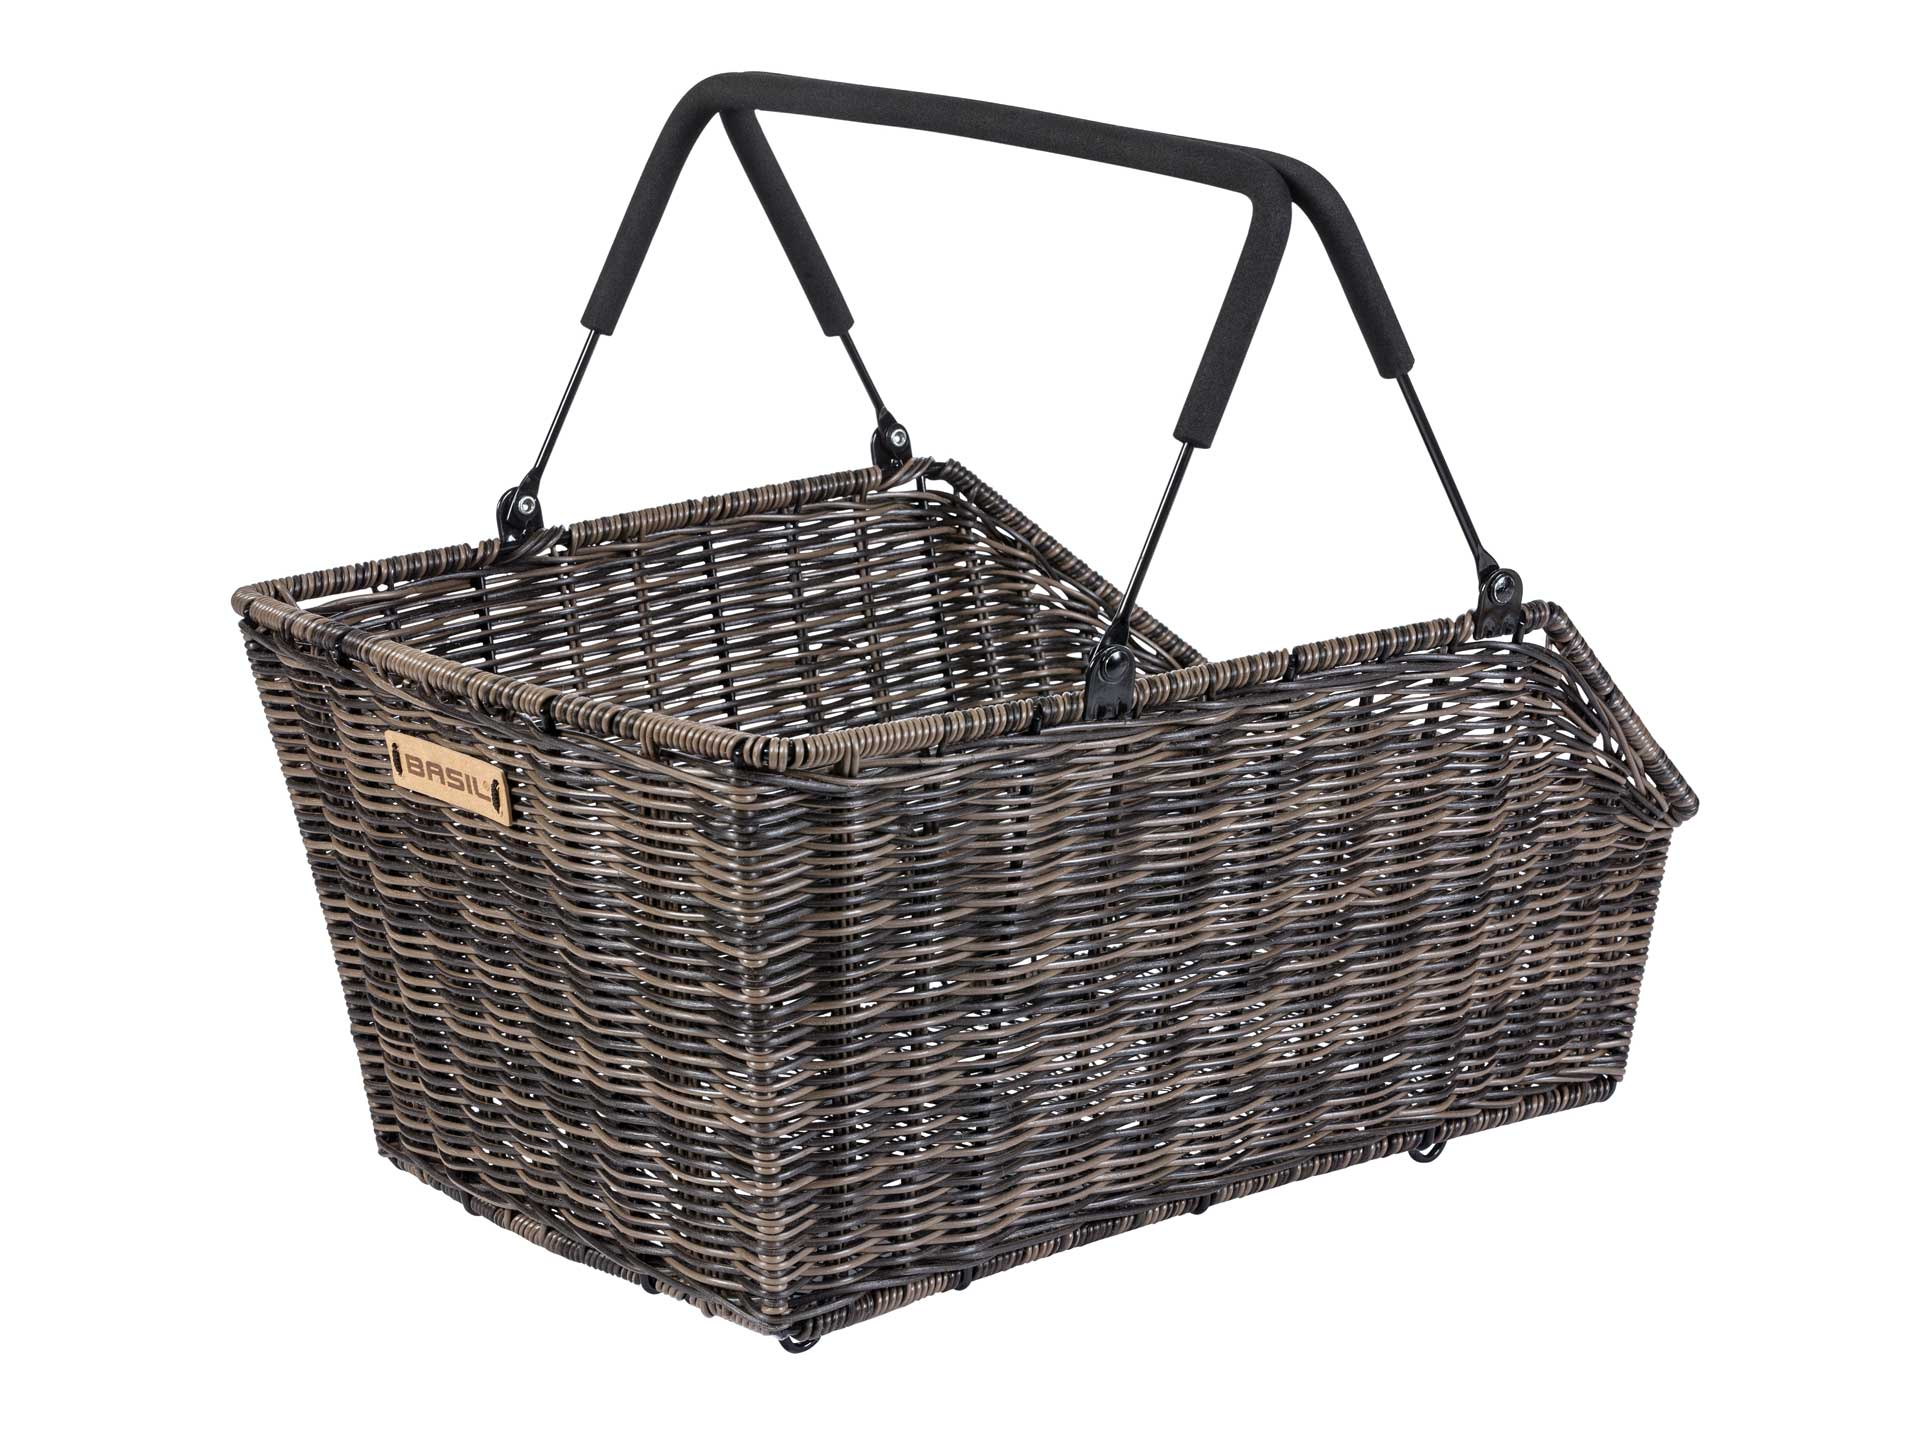 Basil Cento Rattan Look MIK Rear Basket